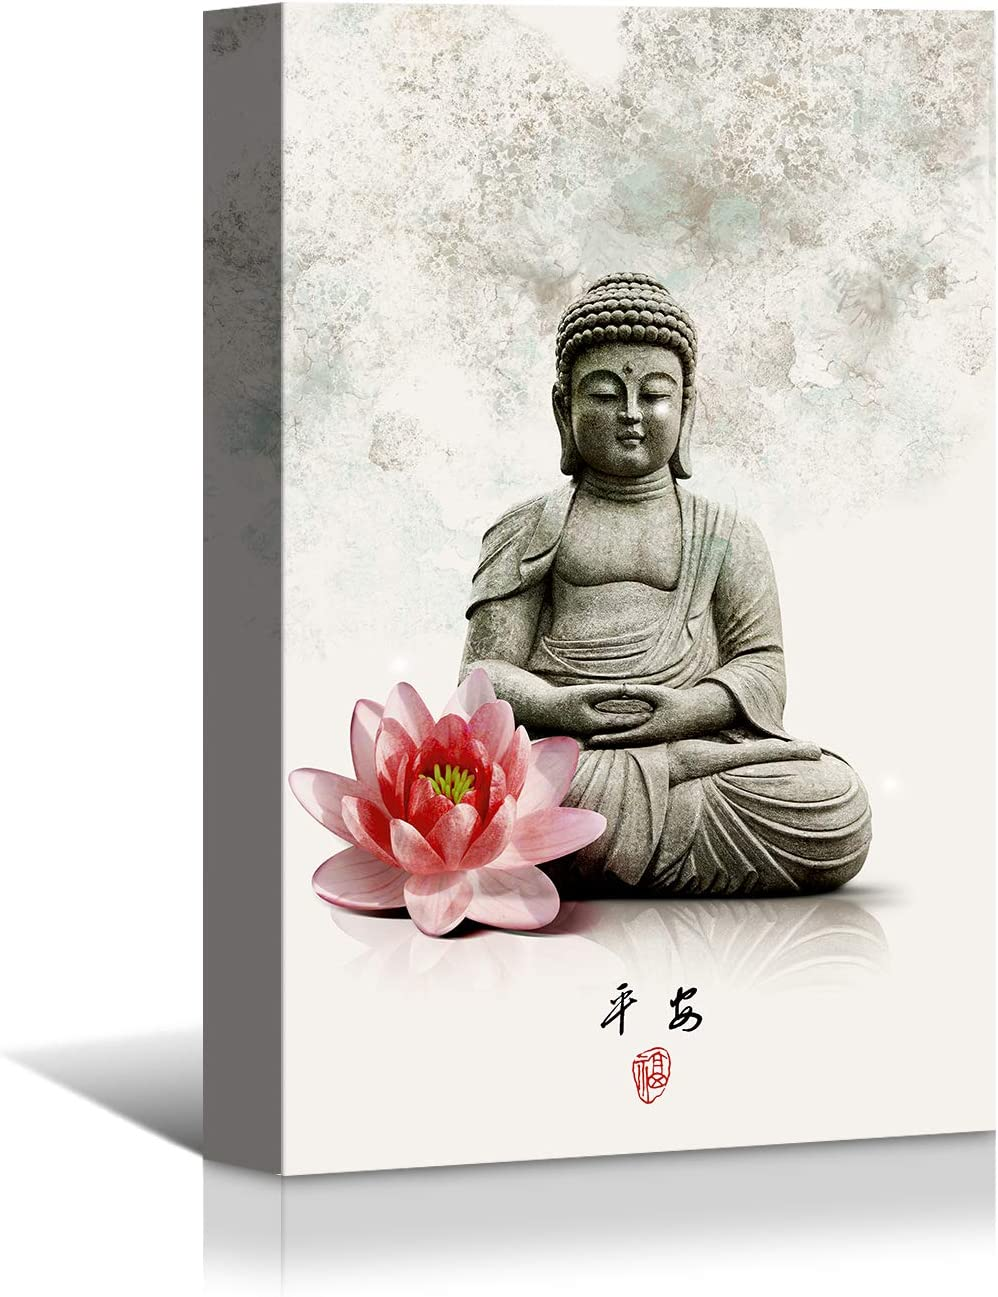 Looife Chinese Style Canvas Wall Art - 30x40 Inch Ink Painting Buddha Statue with Flower Picture Artwork Giclee Prints Wall Decor, Modern Gallery Wrapped Home Art Deco